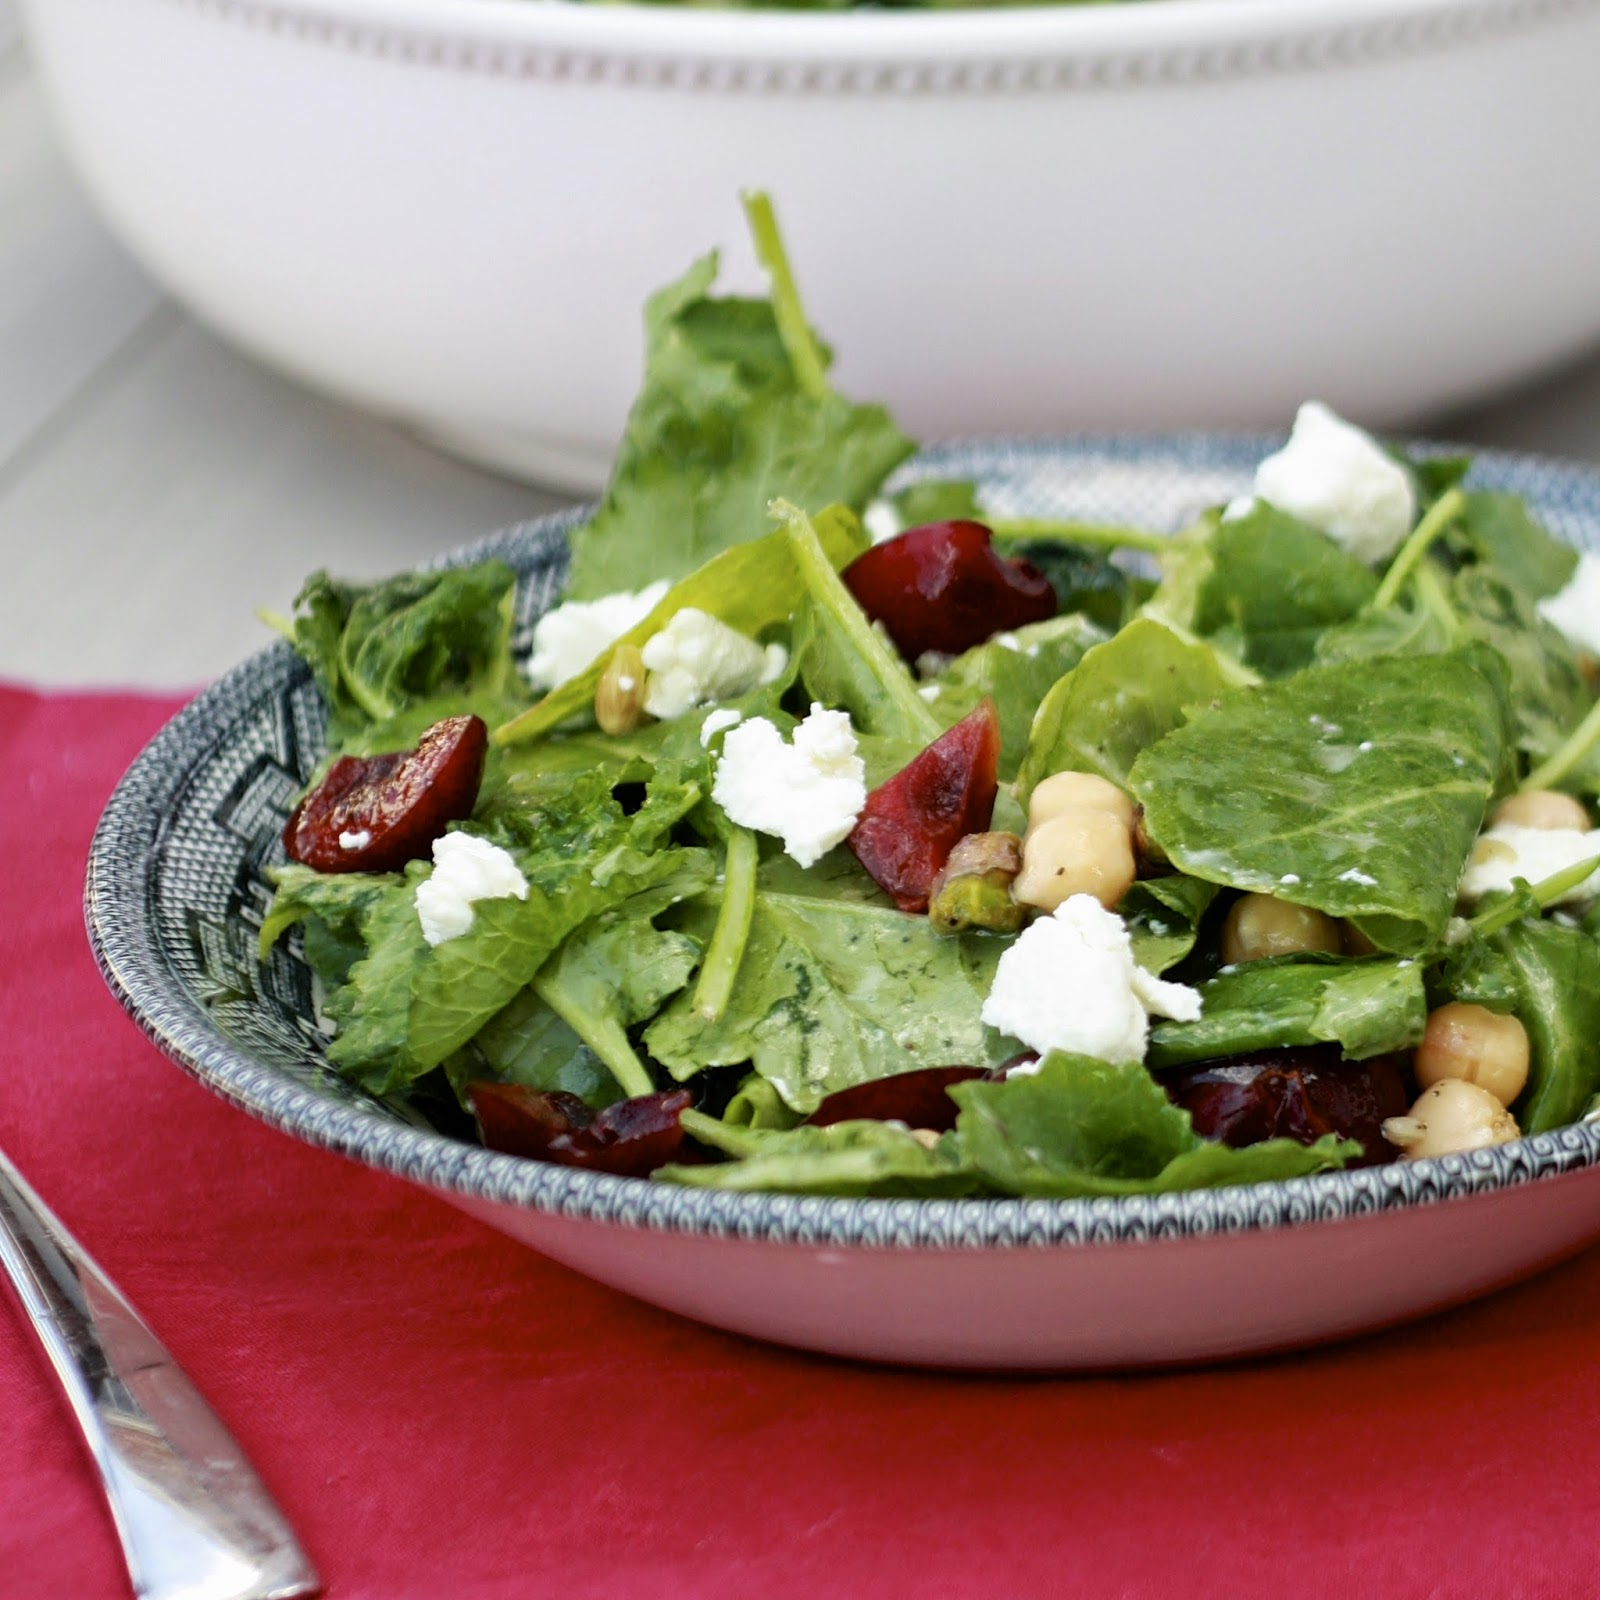 Baby Kale Salad with Cherries, Chickpeas, and Pistachios | The Sweets Life